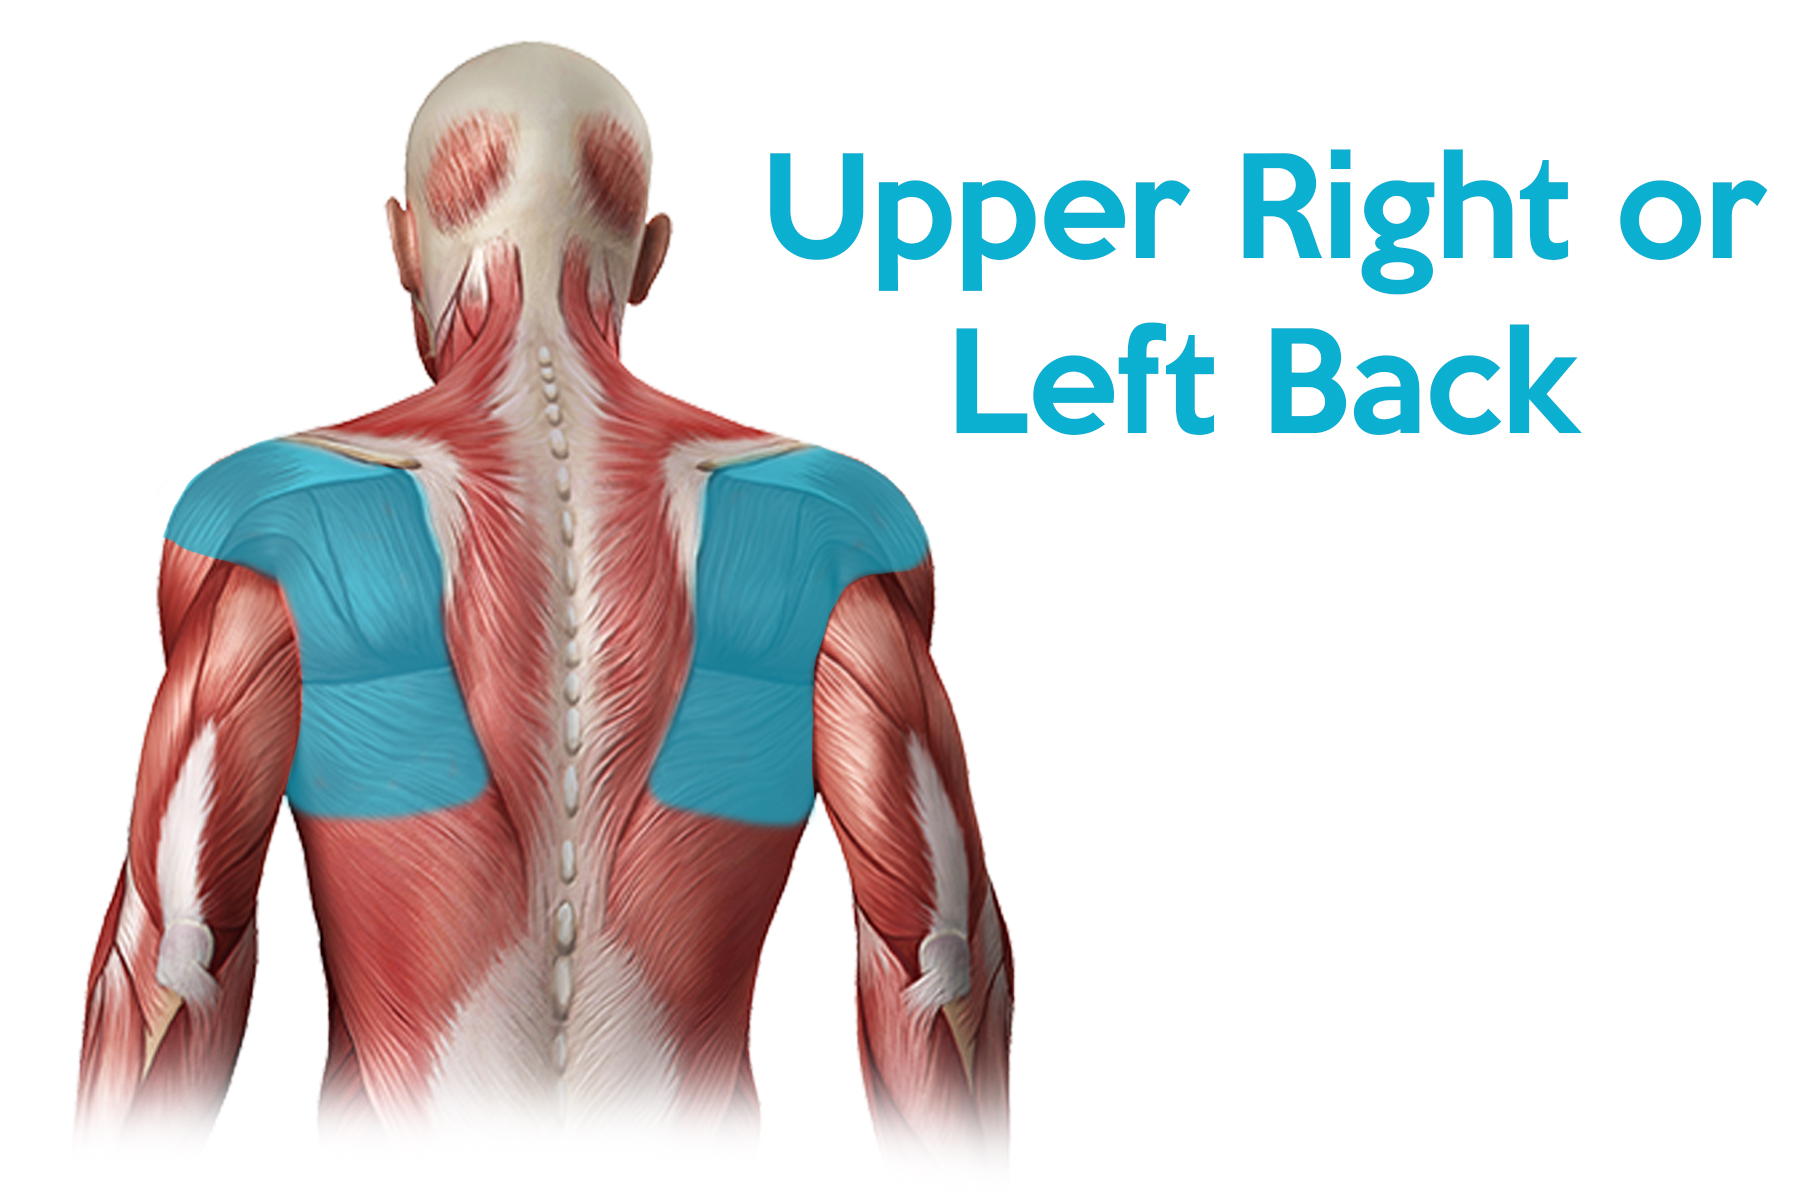 Upper Back Pain - What